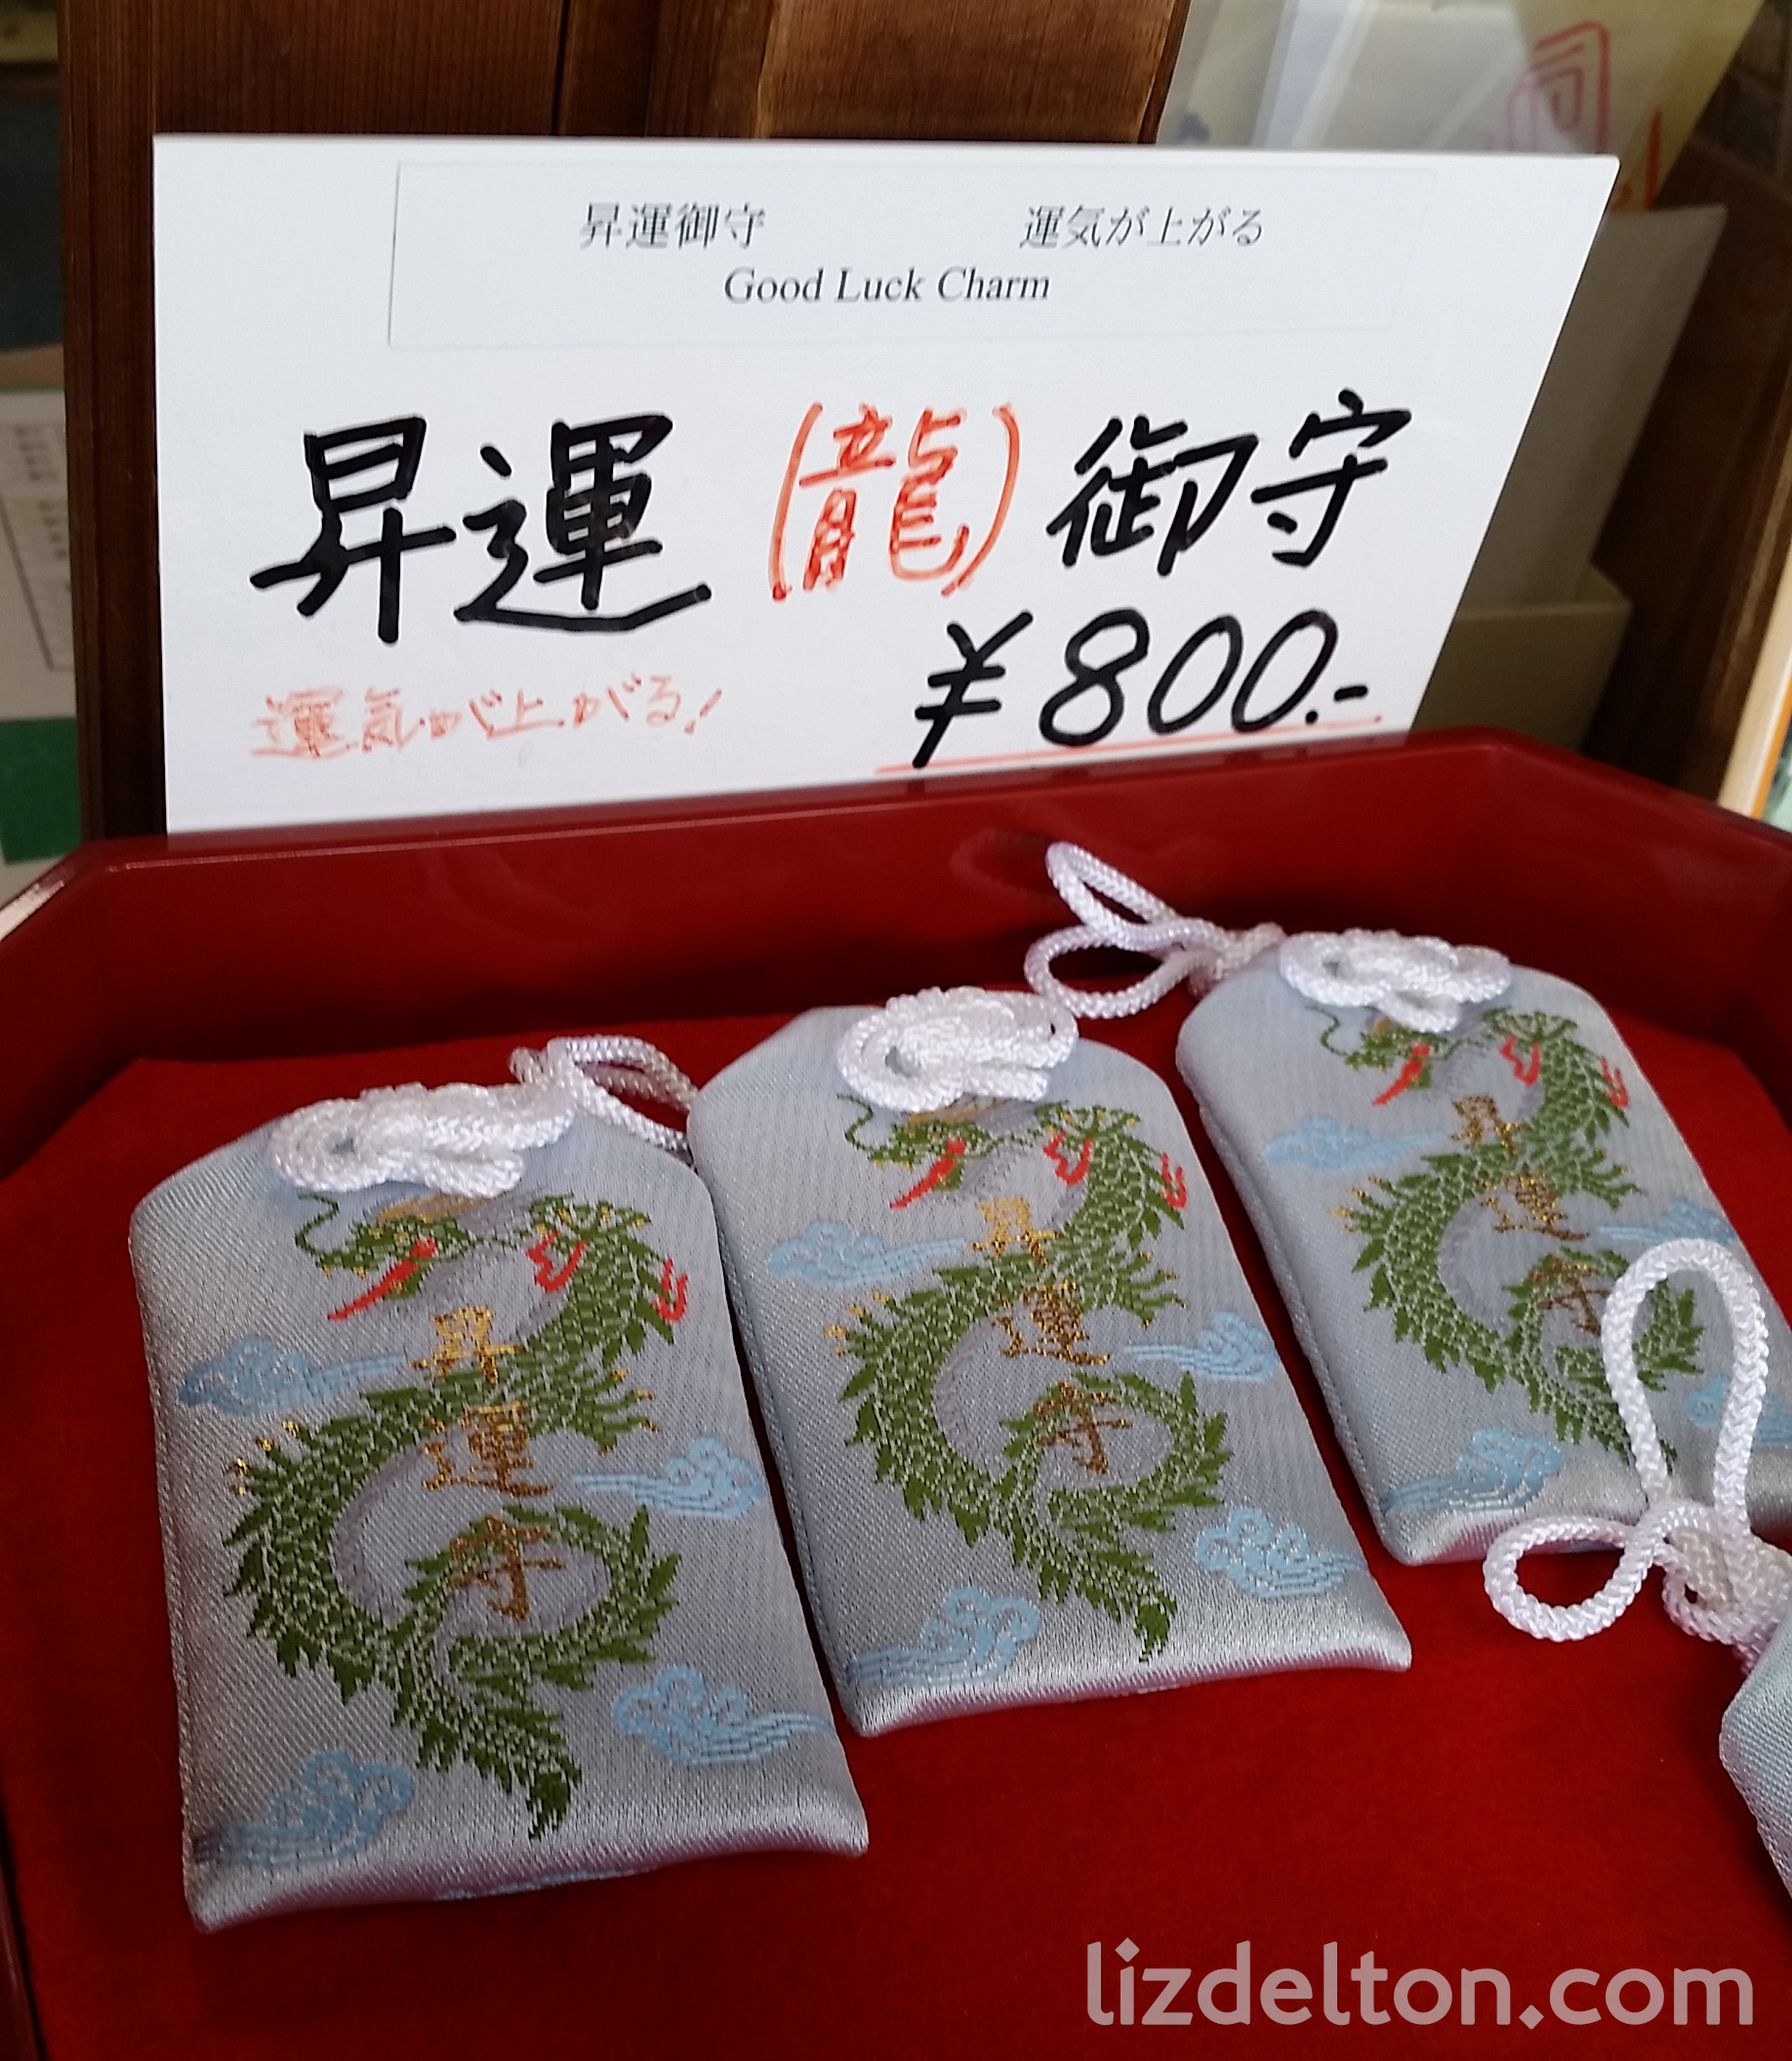 charms at Japanese temples